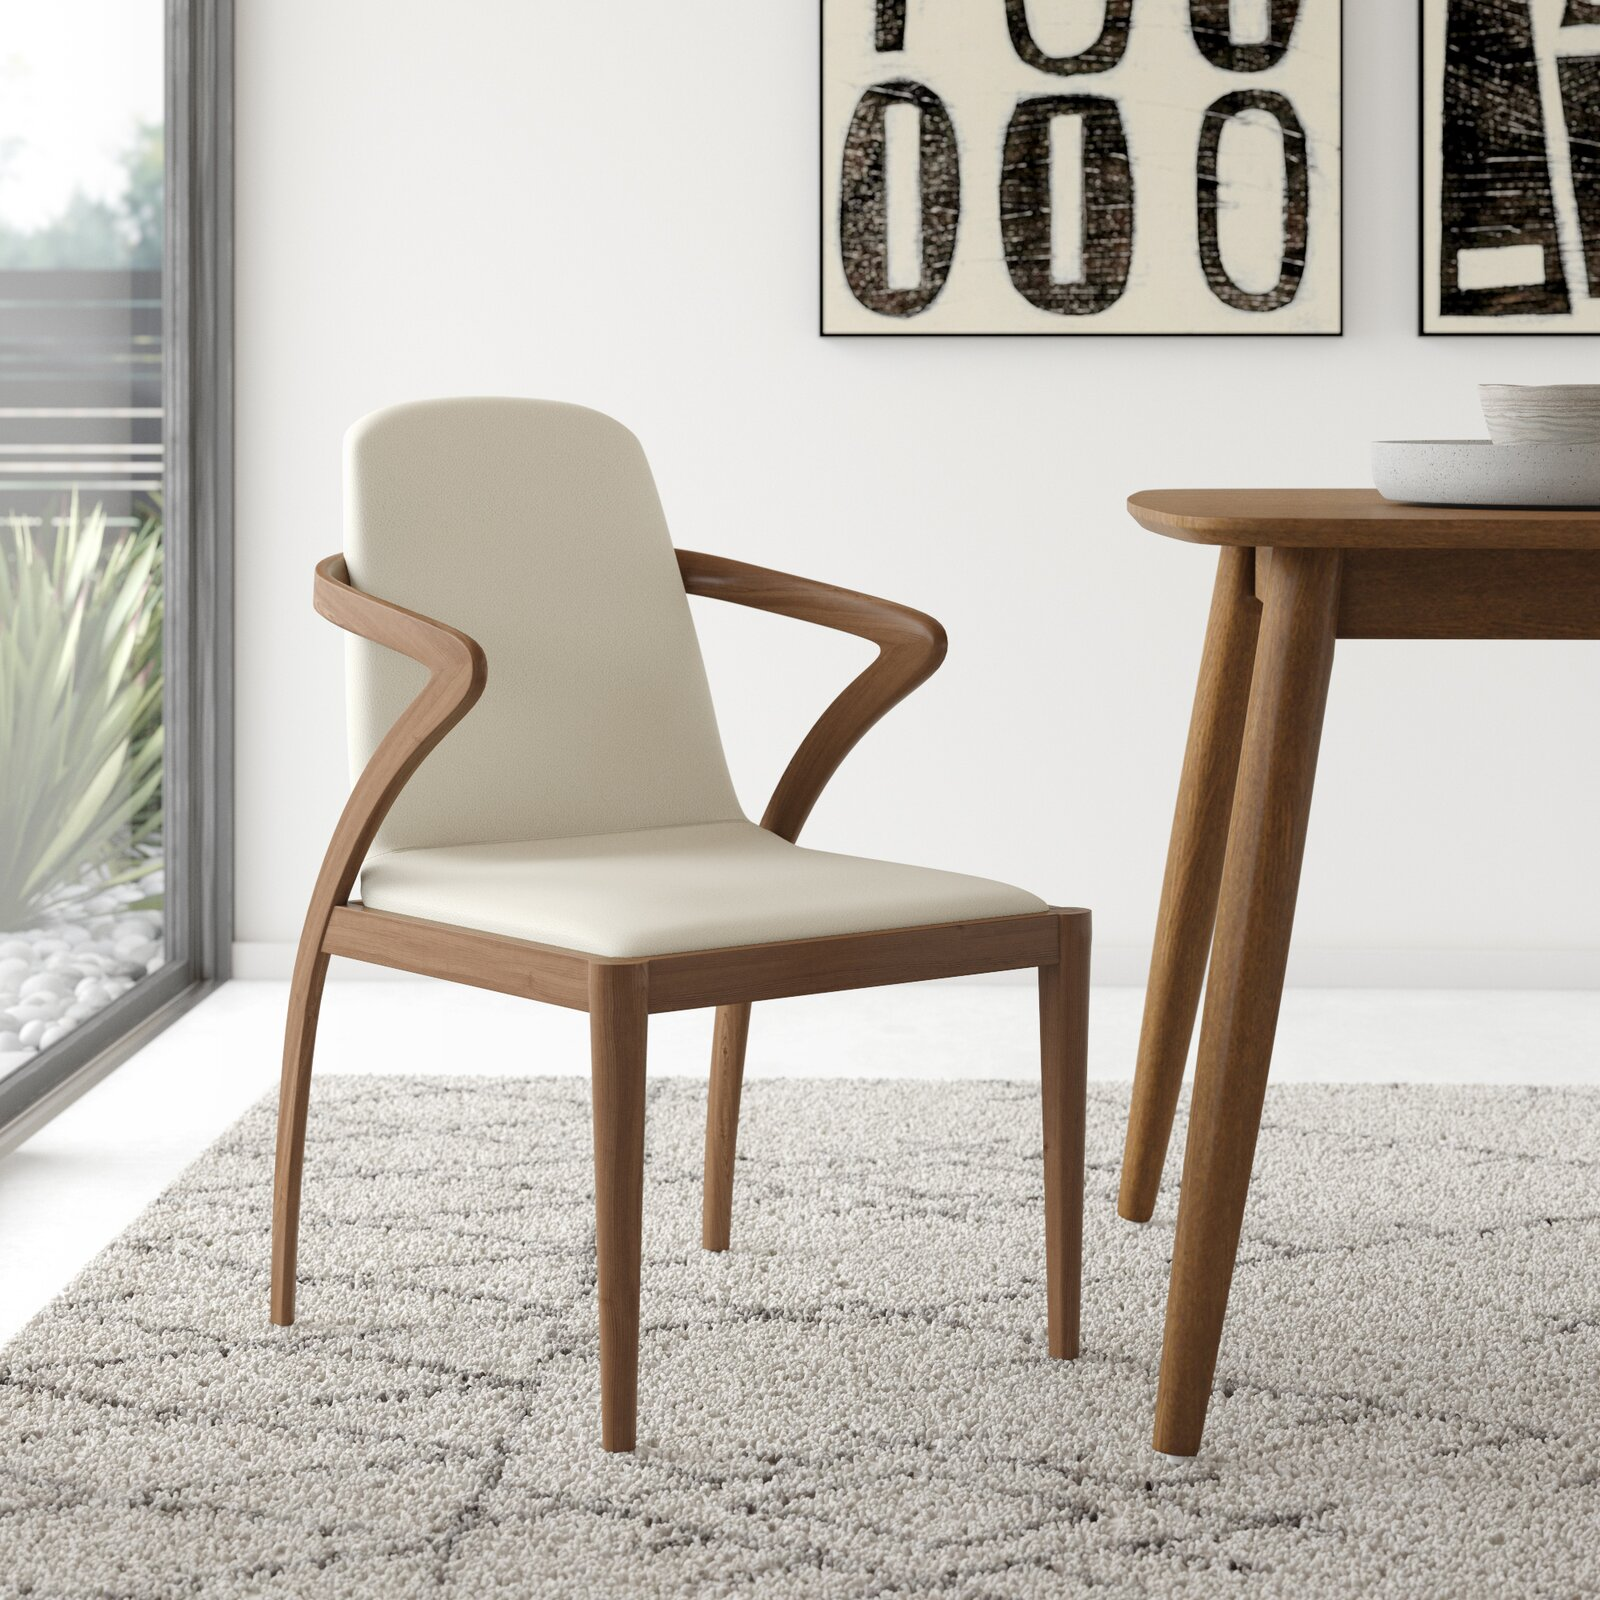 contemporary-wood-upholstered-dining-chairs-sculptural-bentwood-frame-smooth-white-faux-leather-fabric-padded-seat-and-backrest